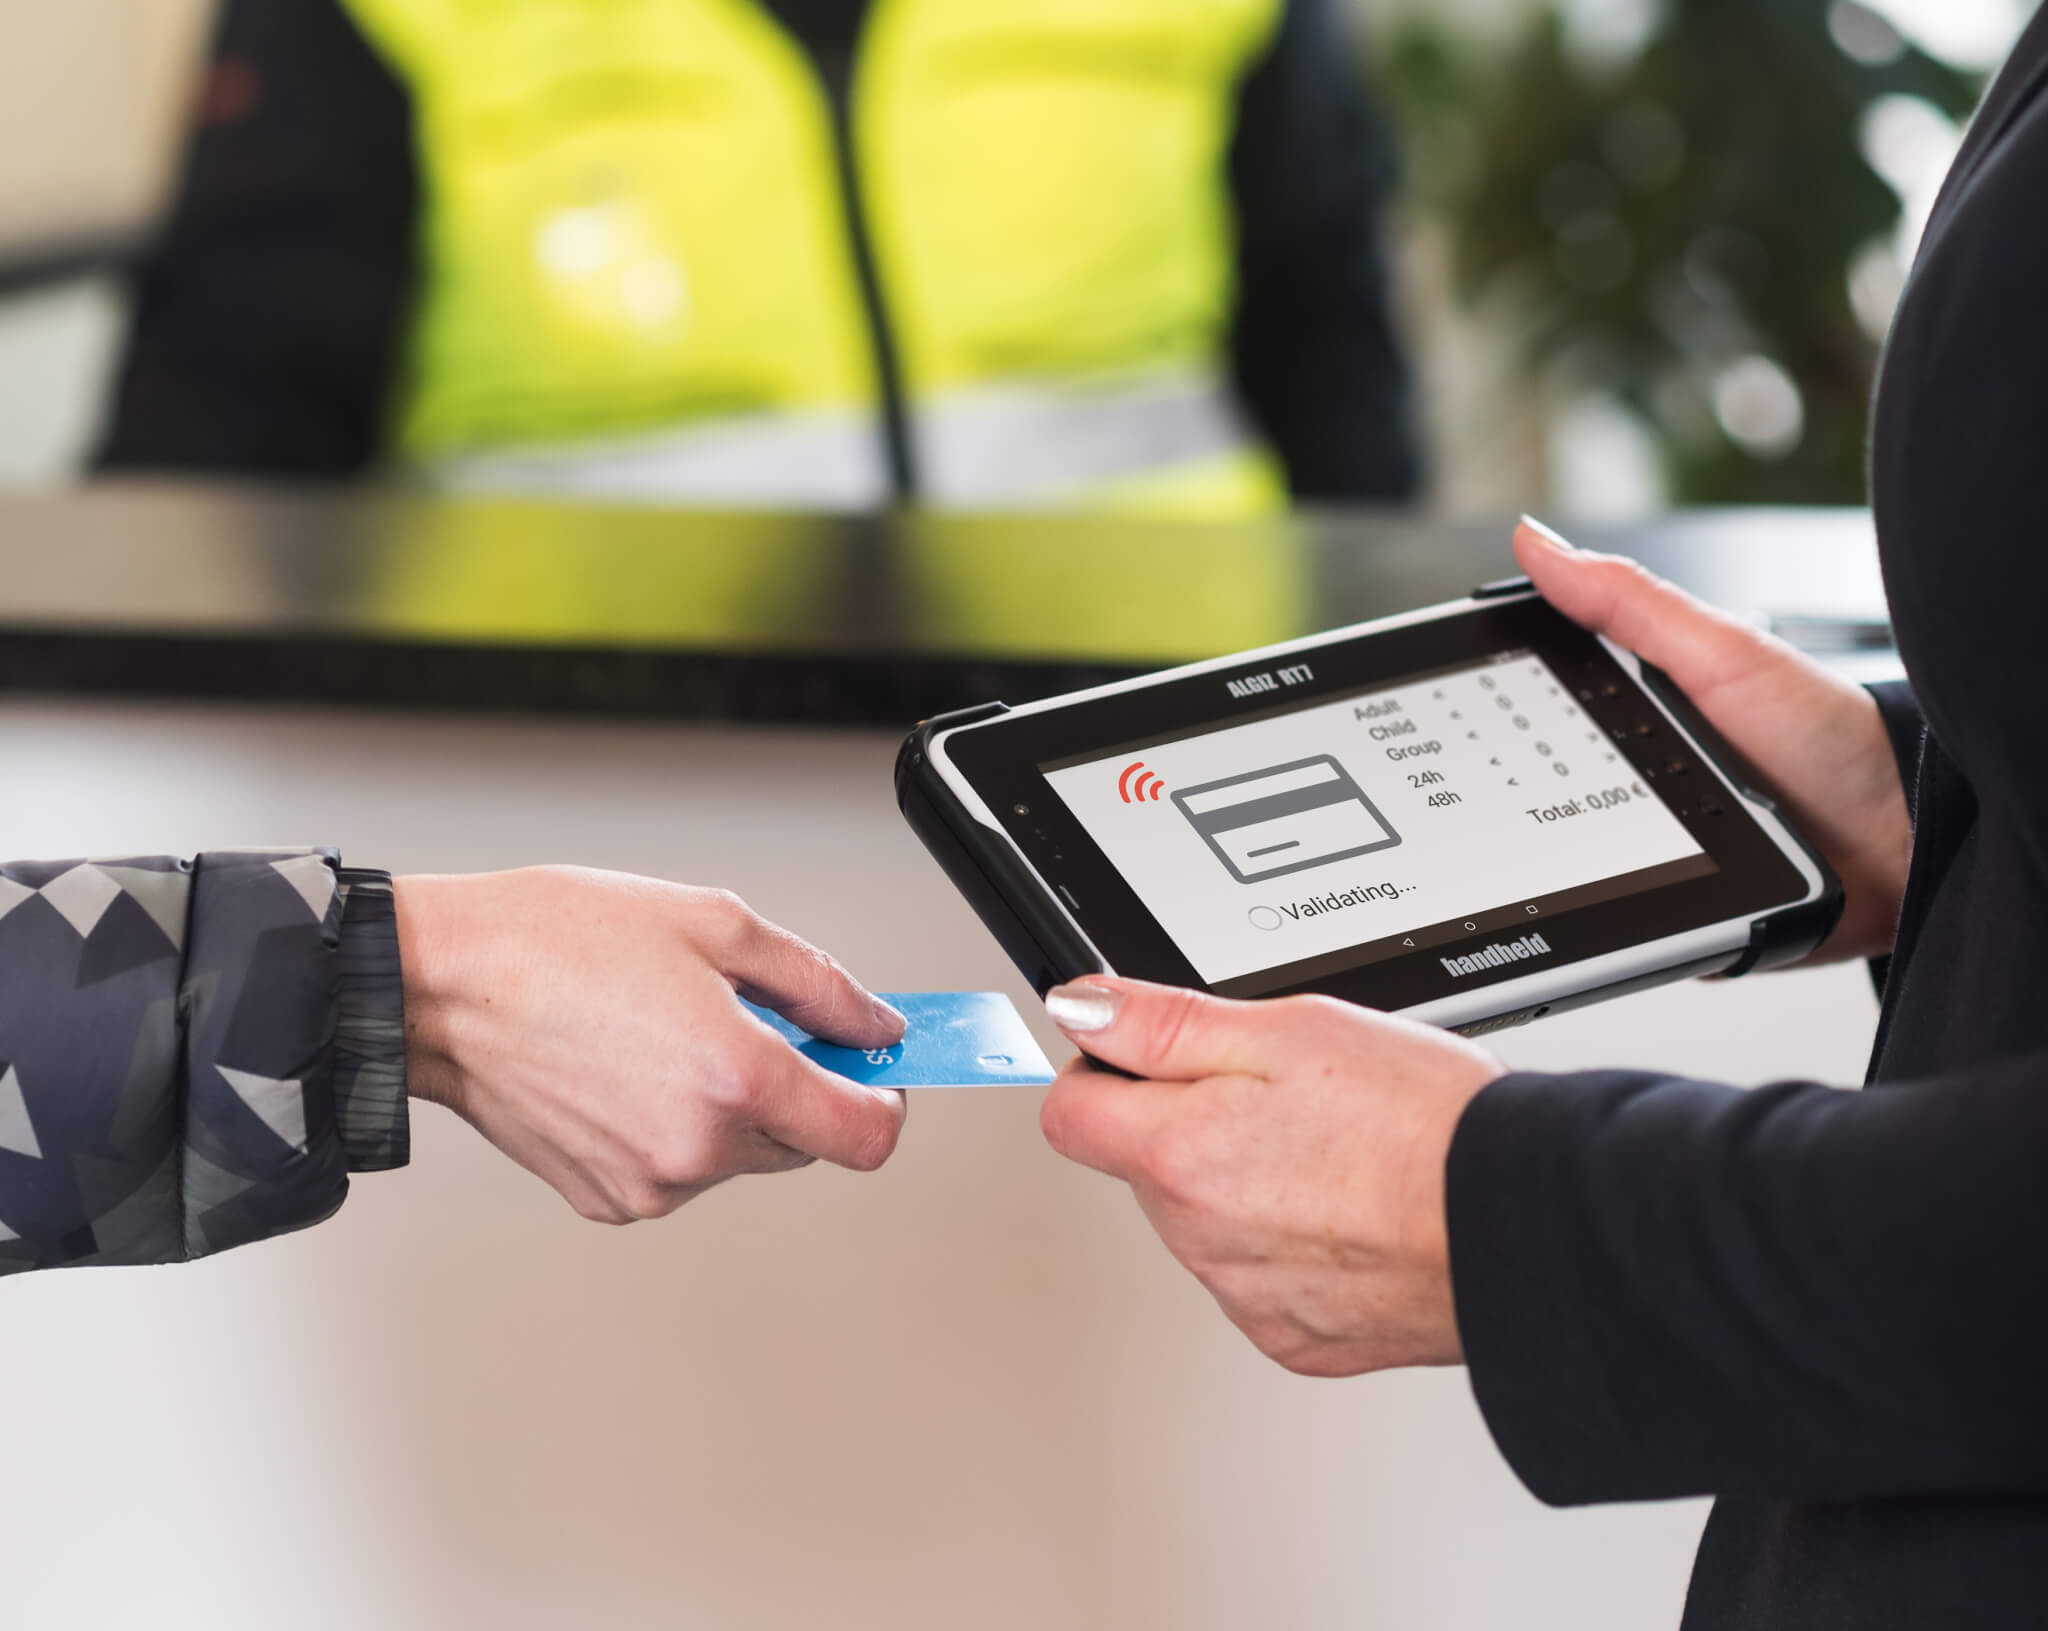 eTicketing and Smartcard Verifications with the Algiz RT7